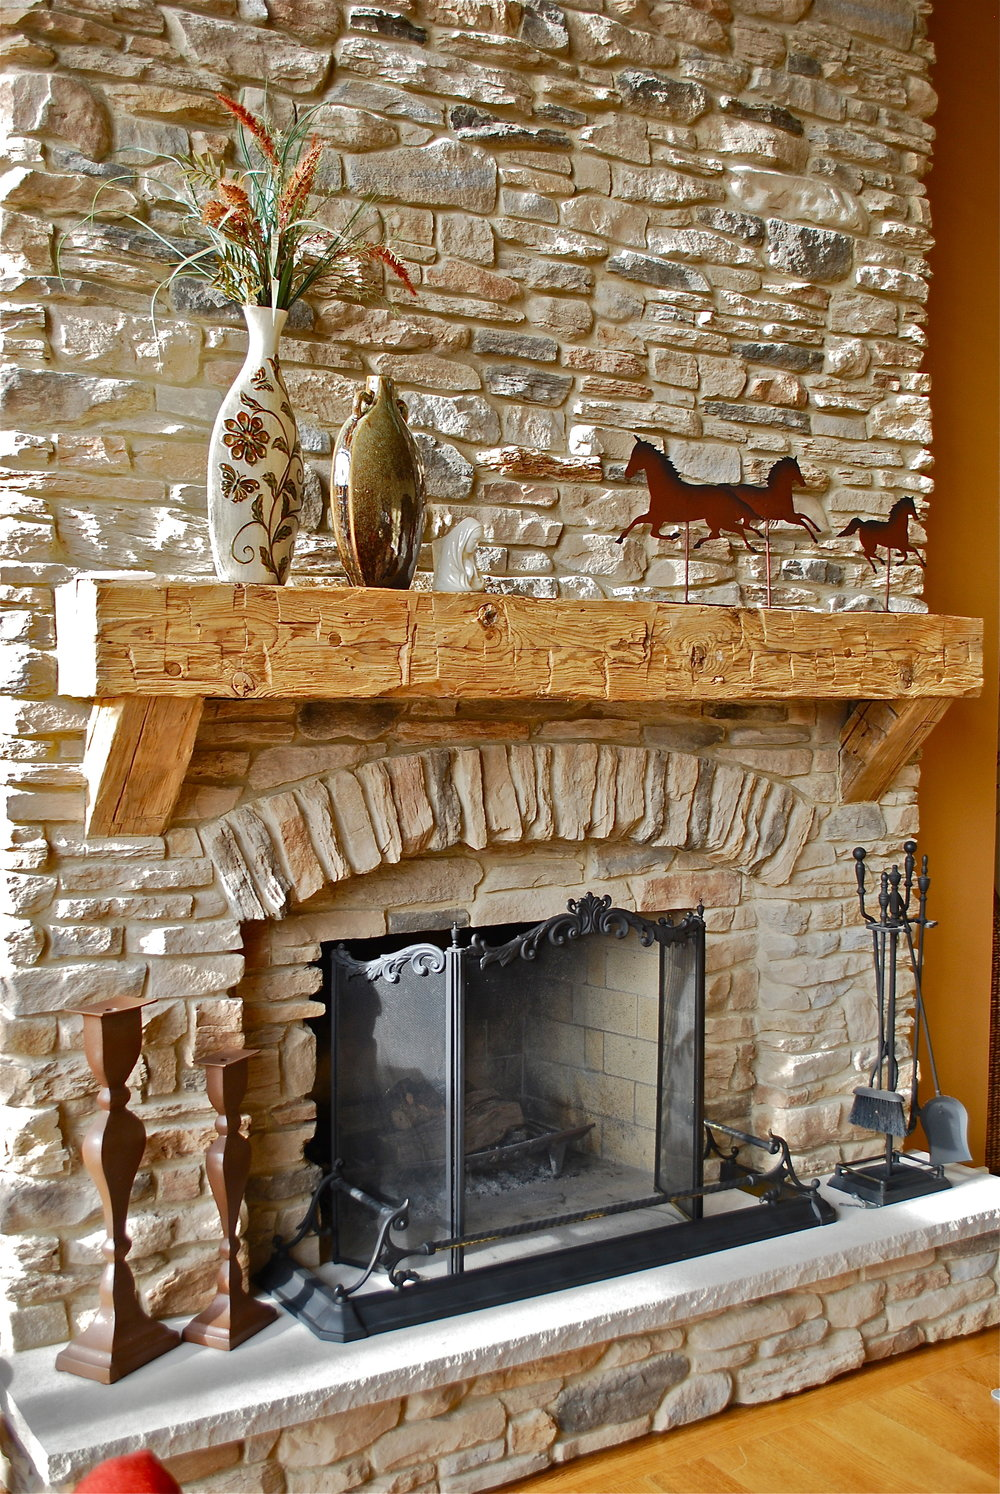 Naperville & St. Charles Illinois Fireplace Renovations, Remodeling & Updating. Looking to Remodel Your Fireplace? Call Southampton Builders LLC.